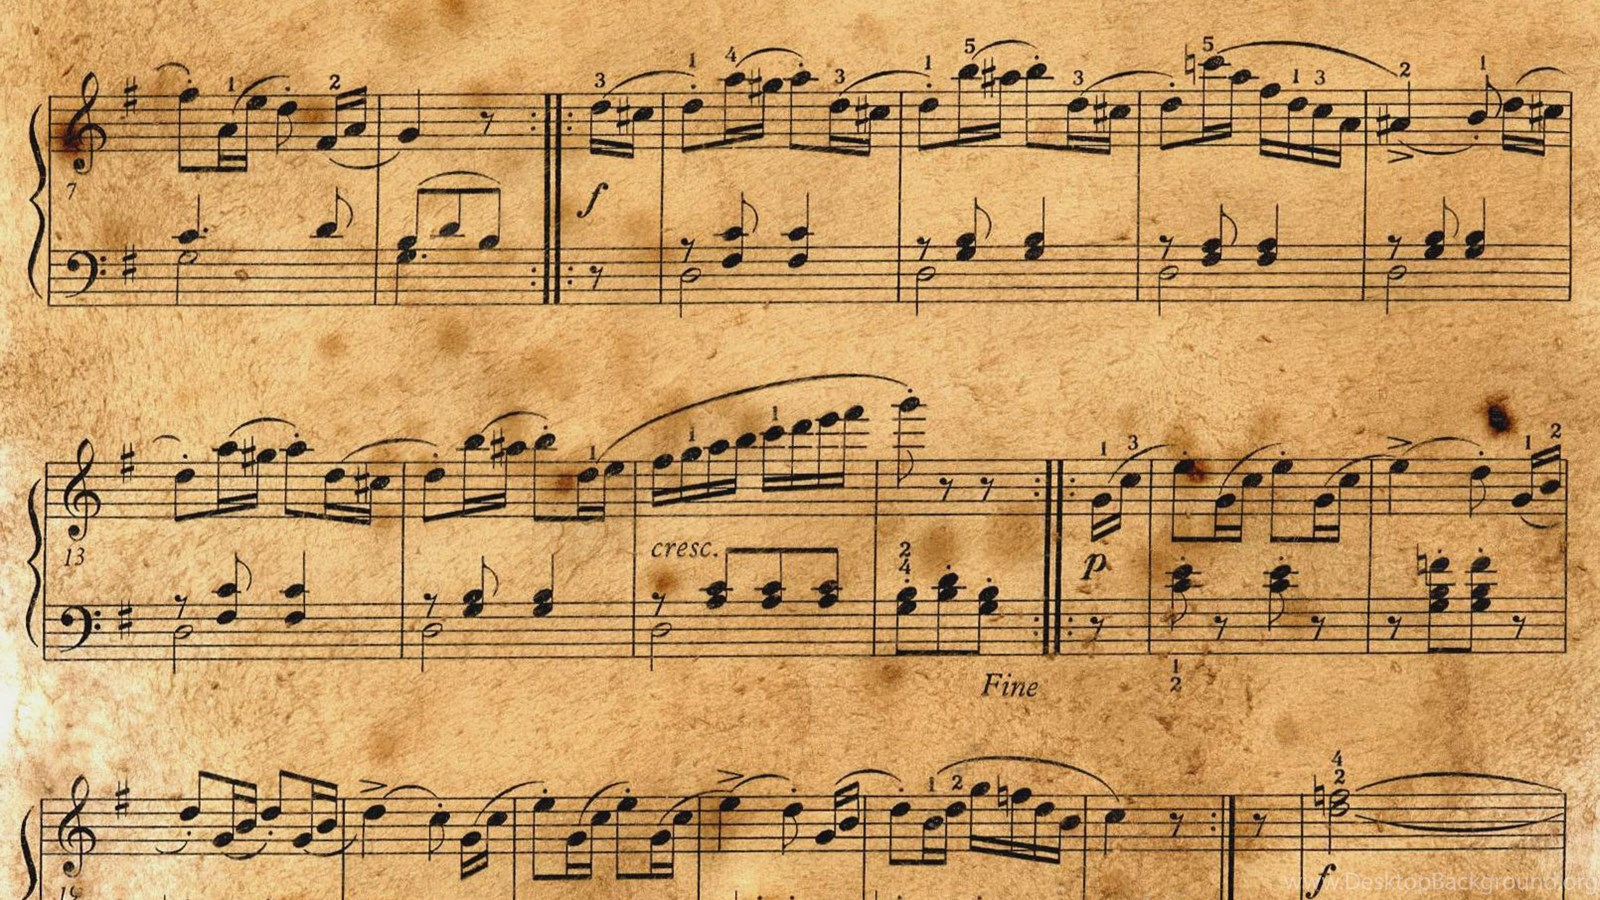 Vintage Music Note Wallpapers For Android Harmony: High Res Music Sheet Wallpapers Desktop Background